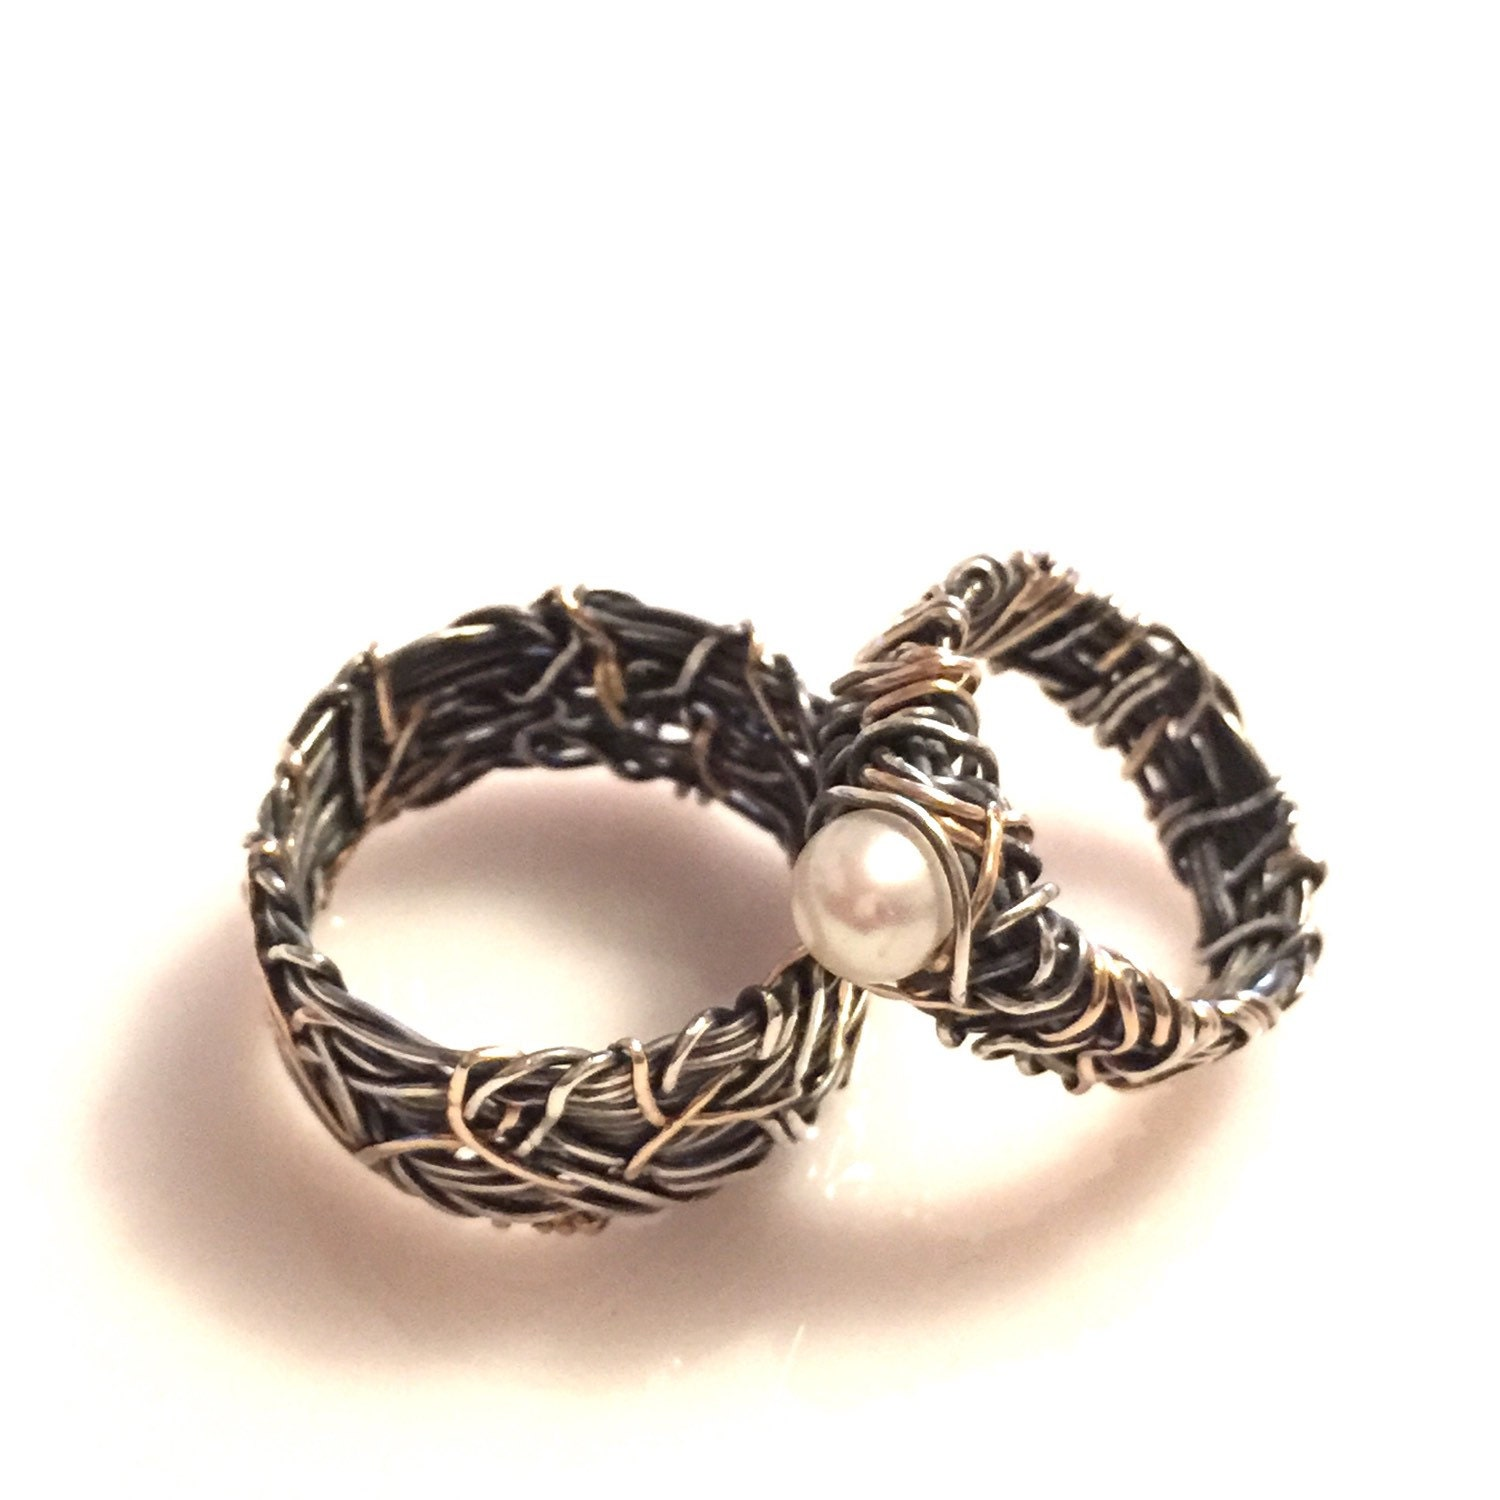 14k gold and oxidized silver his and hers wedding rings